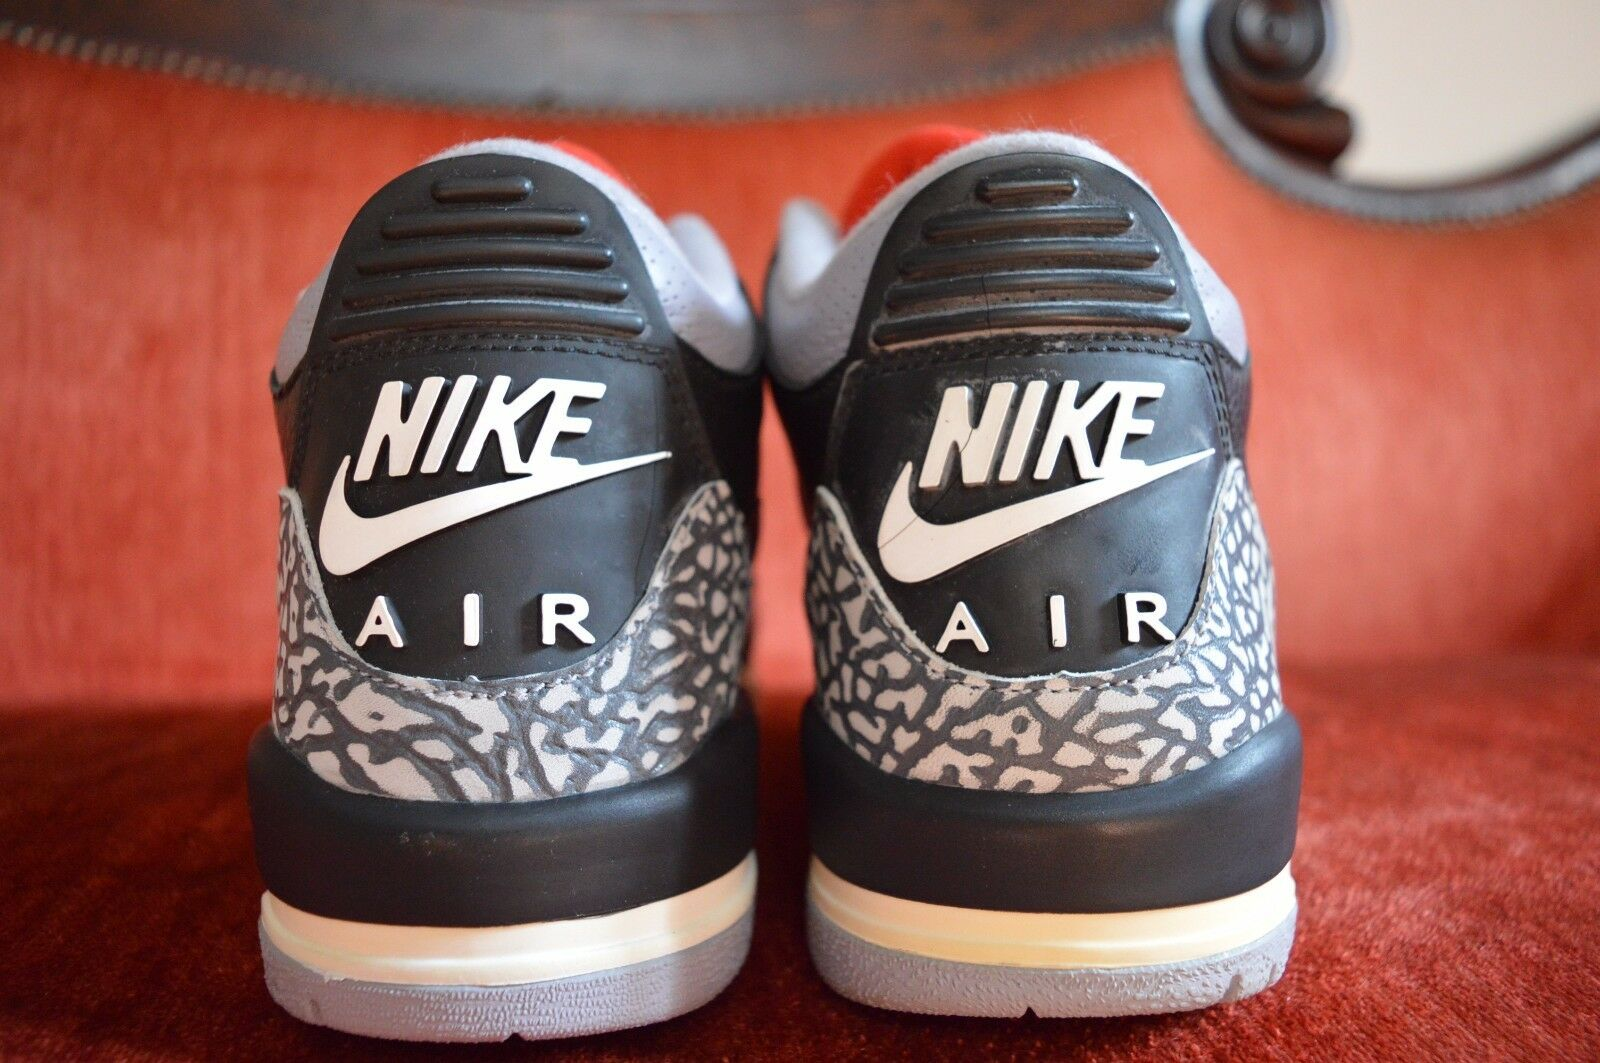 2018 Nike Air Jordan III 3 Retro BLACK CEMENT GREY FIRE RED WHITE 136064-001 9 New shoes for men and women, limited time discount